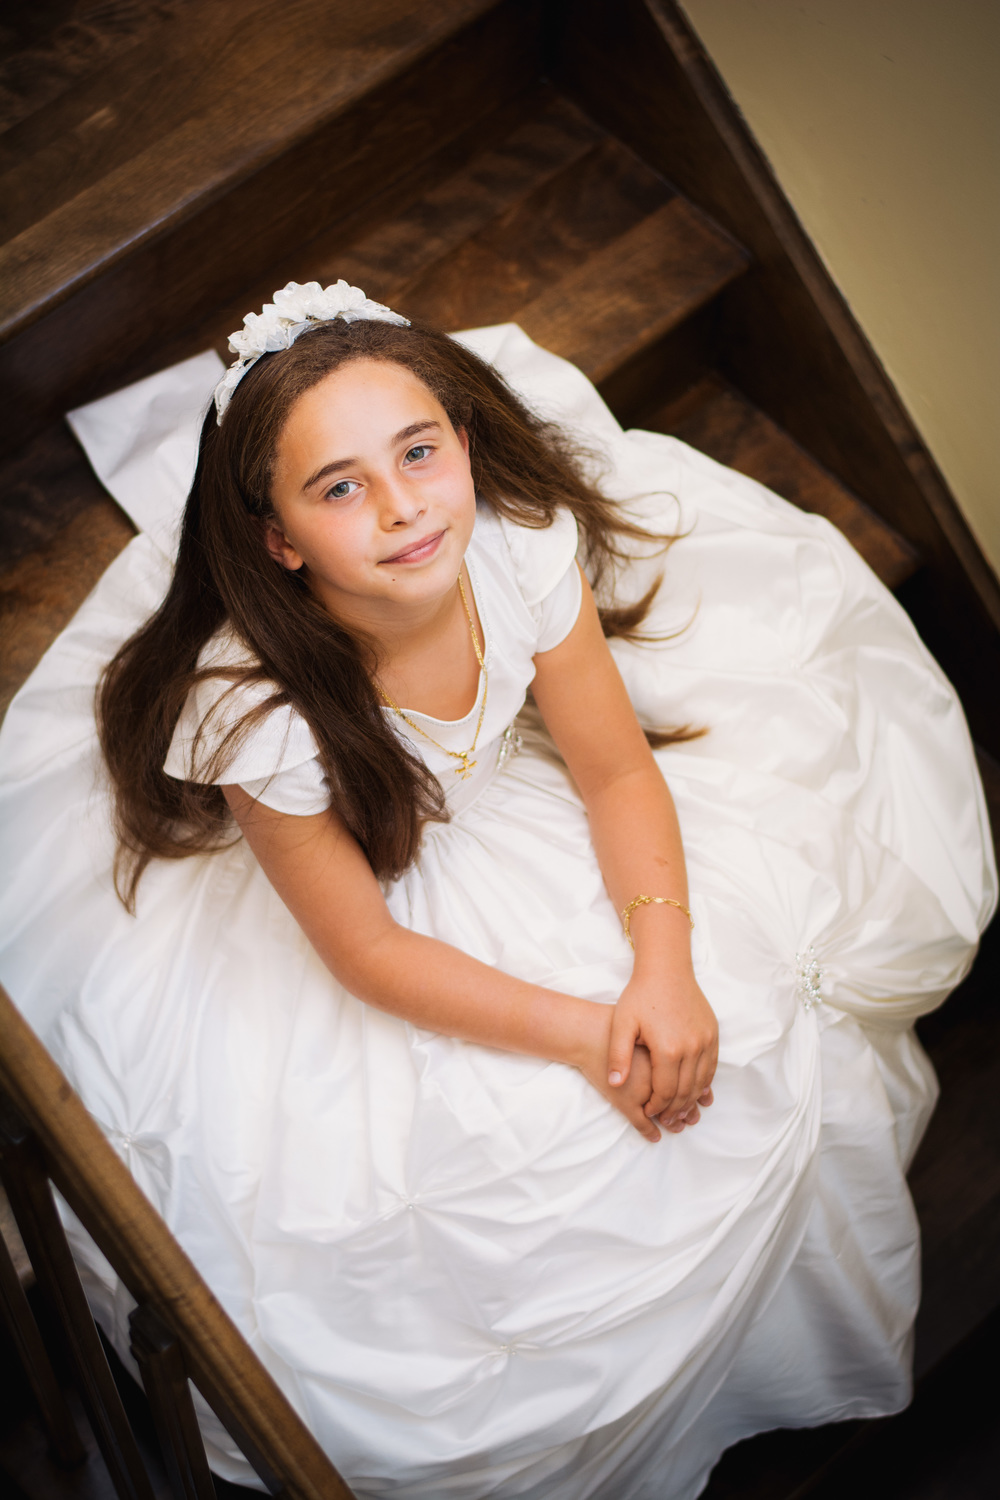 Elyana_First_Communion-13.jpg